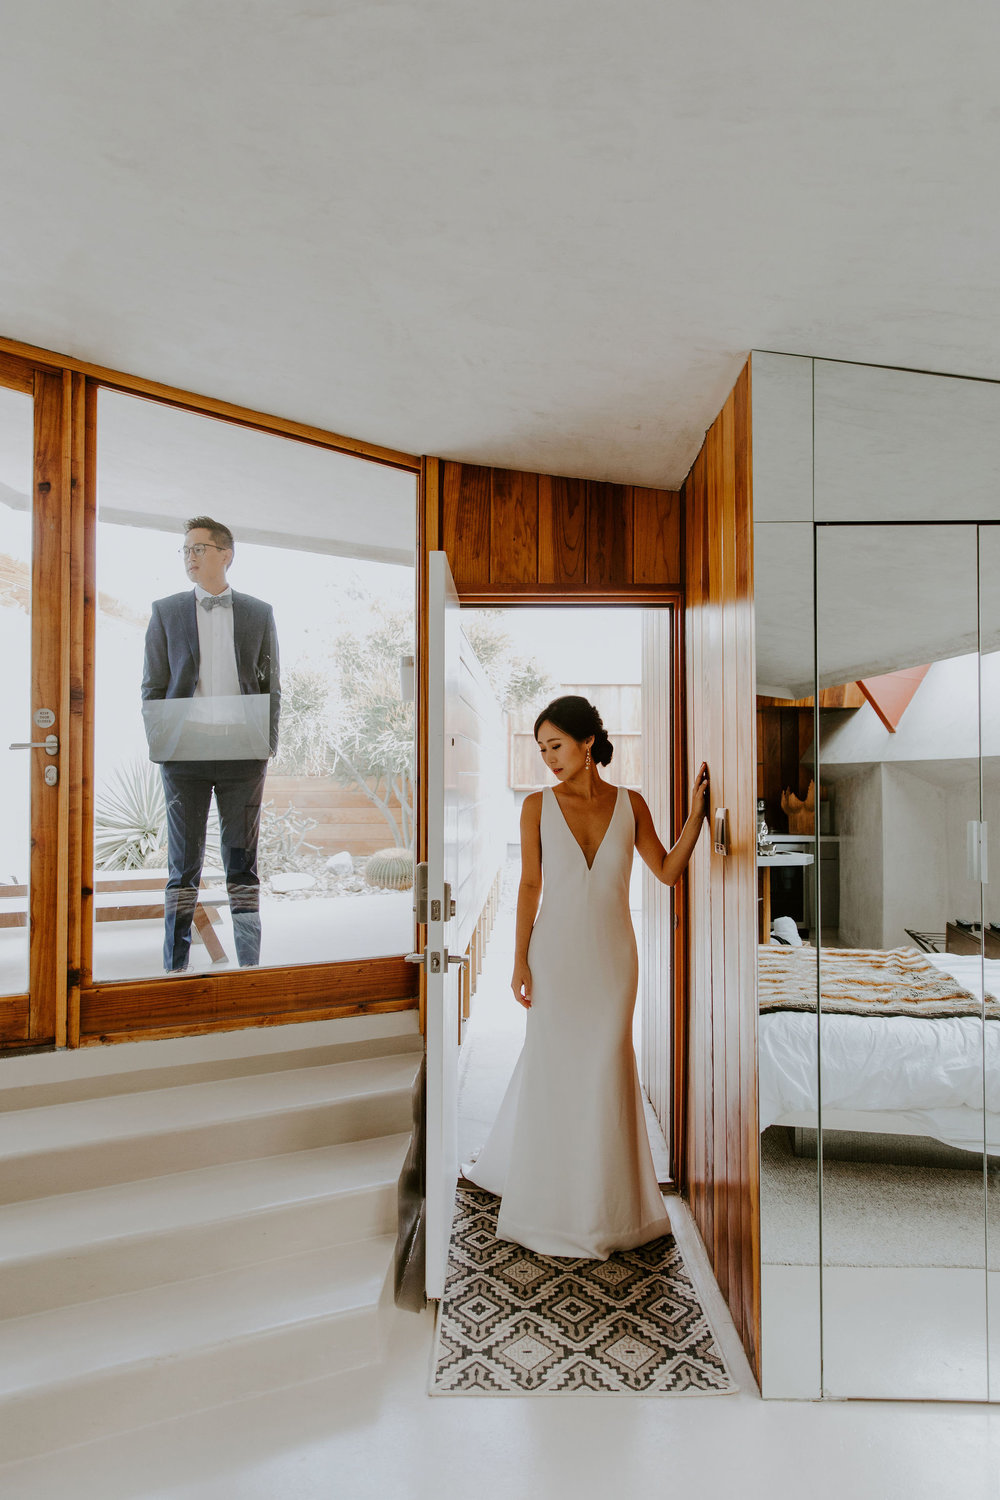 Palm Springs Lautner Compound Wedding May Iosotaluno Photography 82.jpg